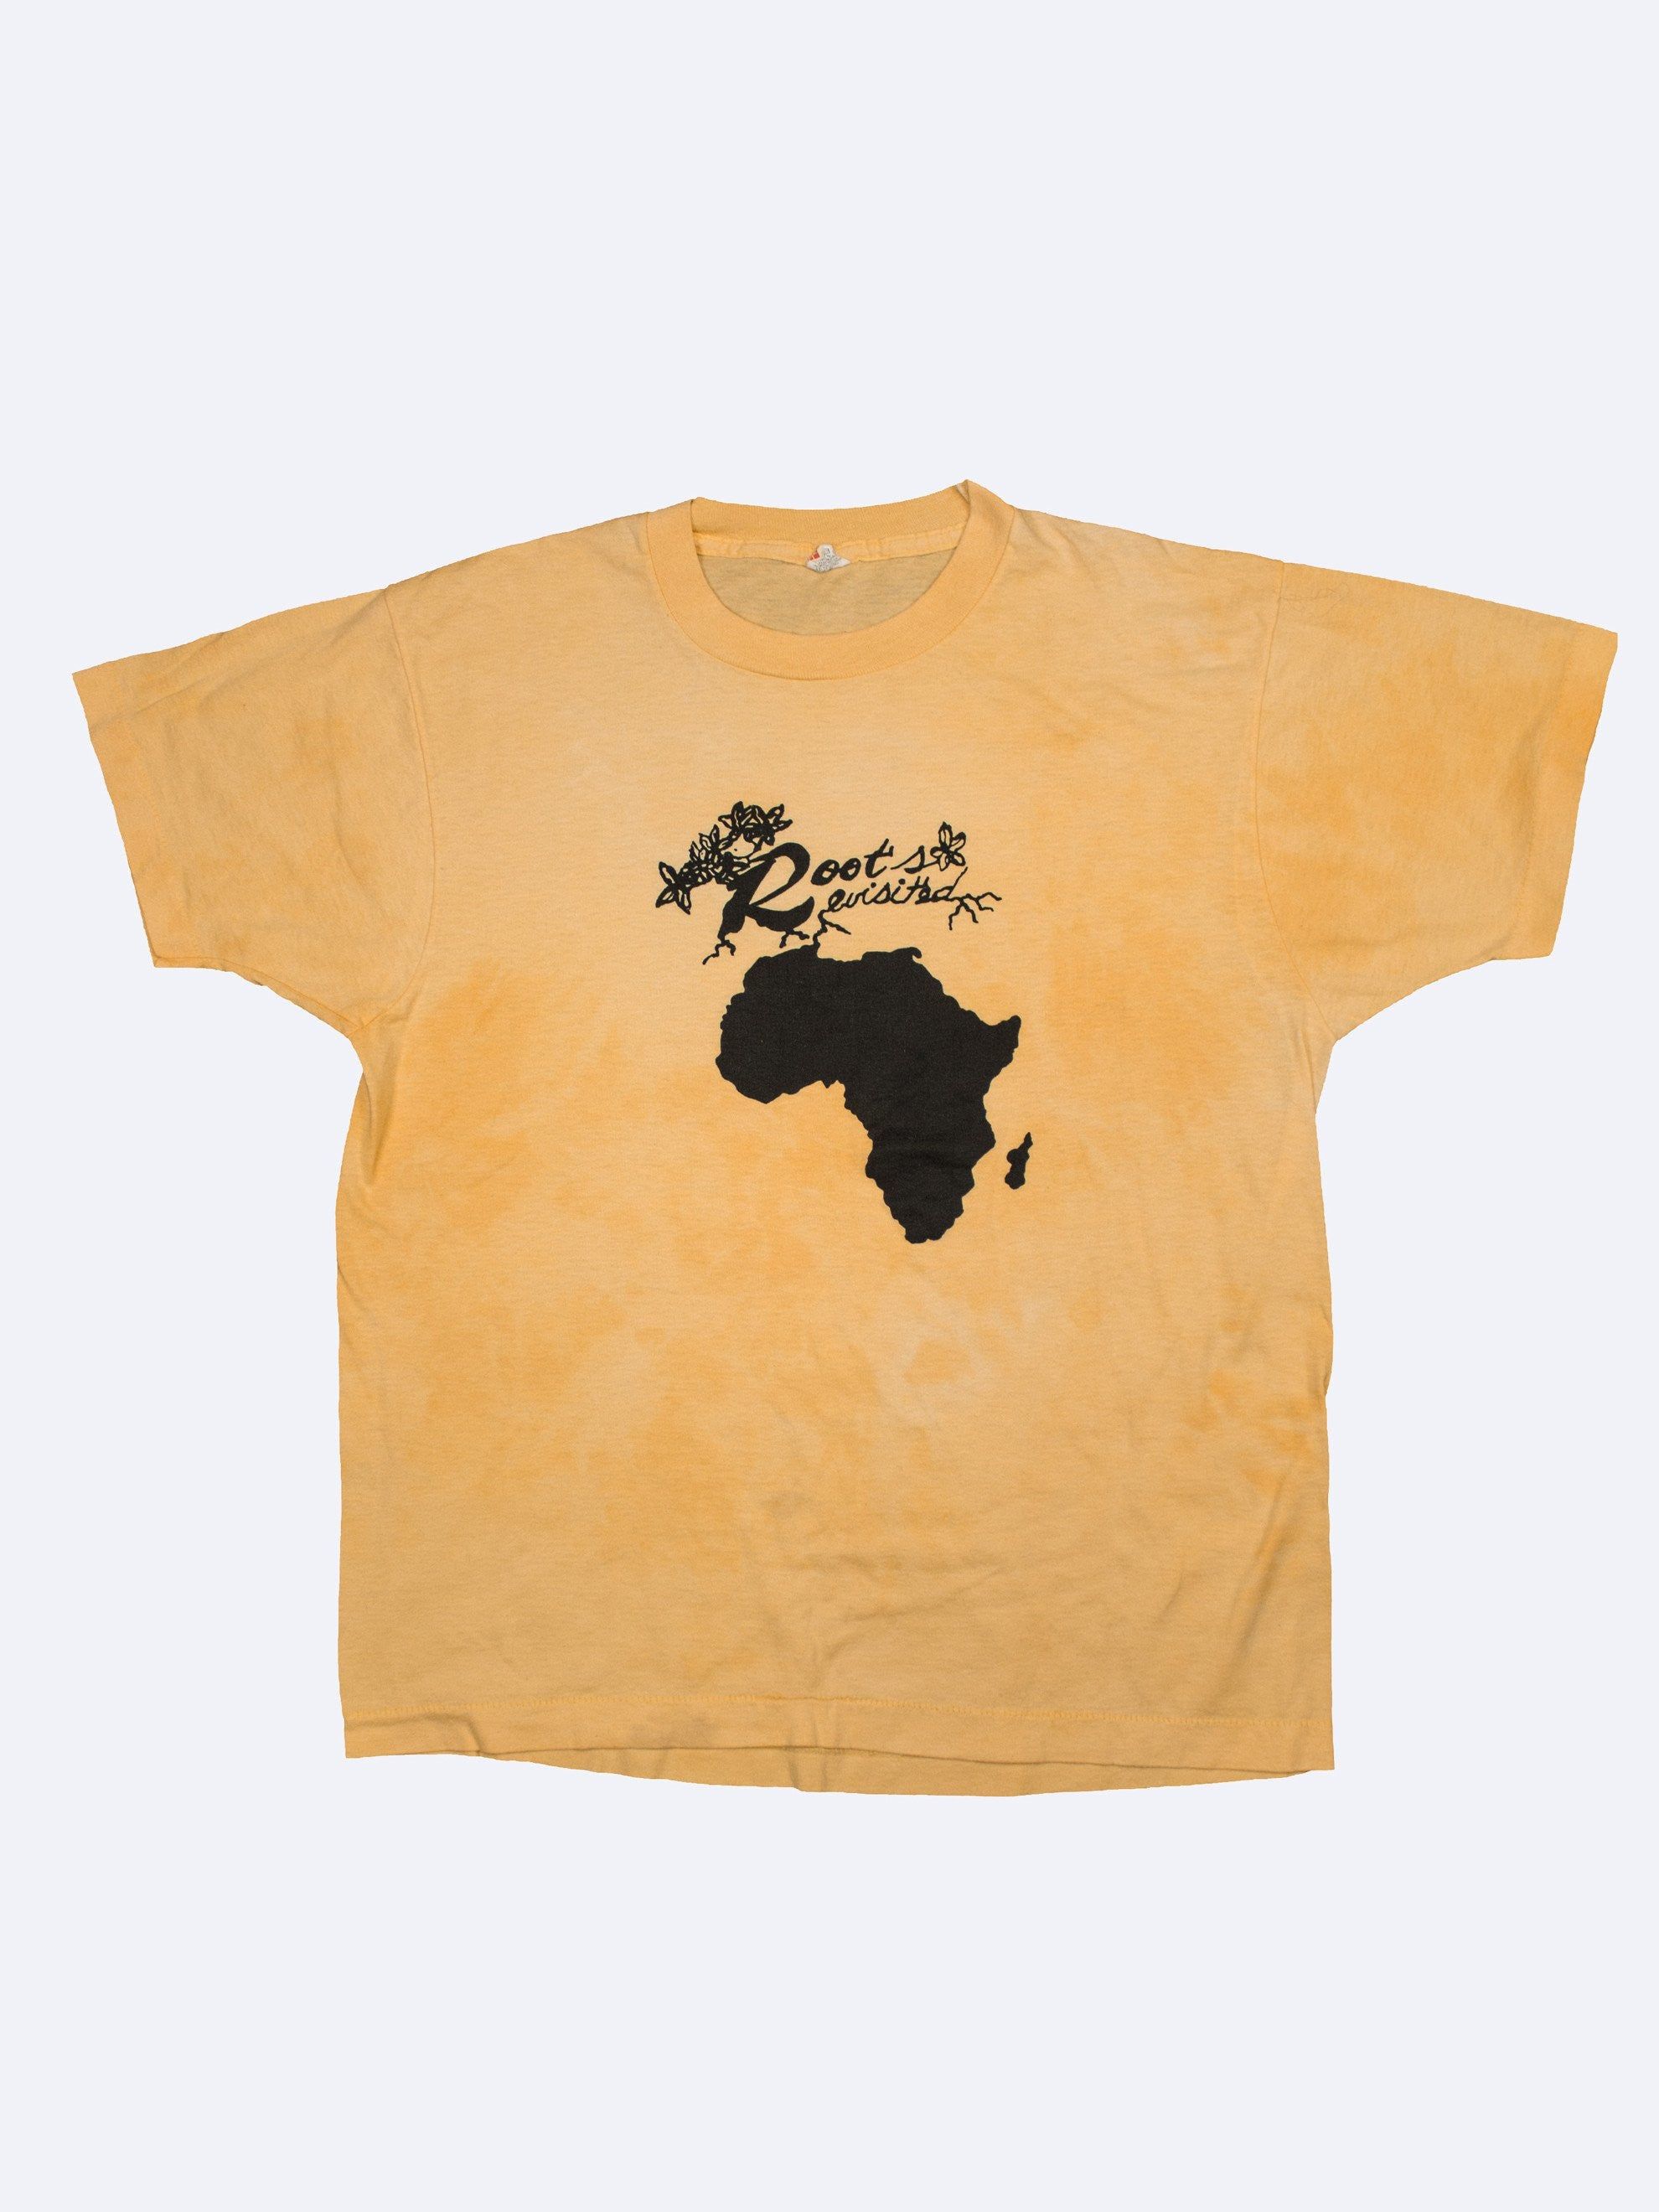 Orange 1980's Roots Revisited T-Shirt 1